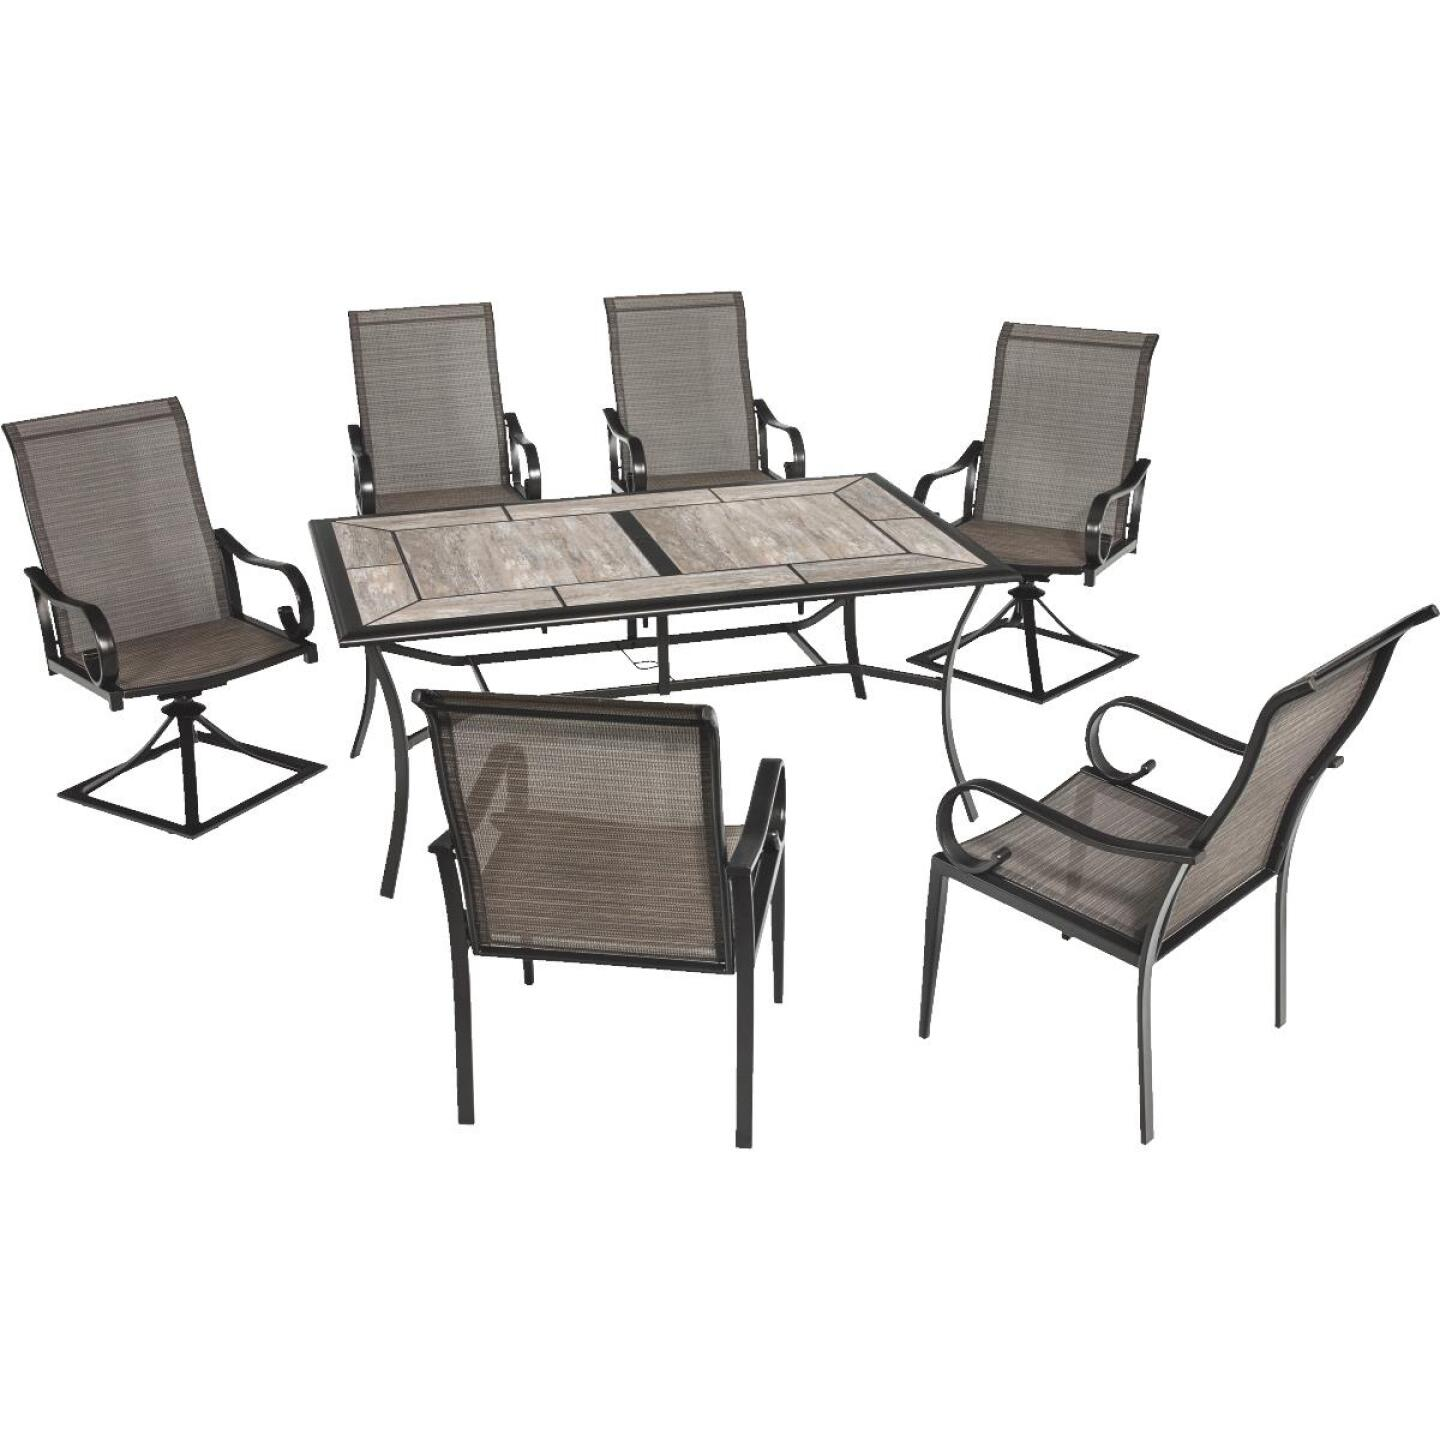 Outdoor Expressions Berkshire 7-Piece Dining Set Image 93